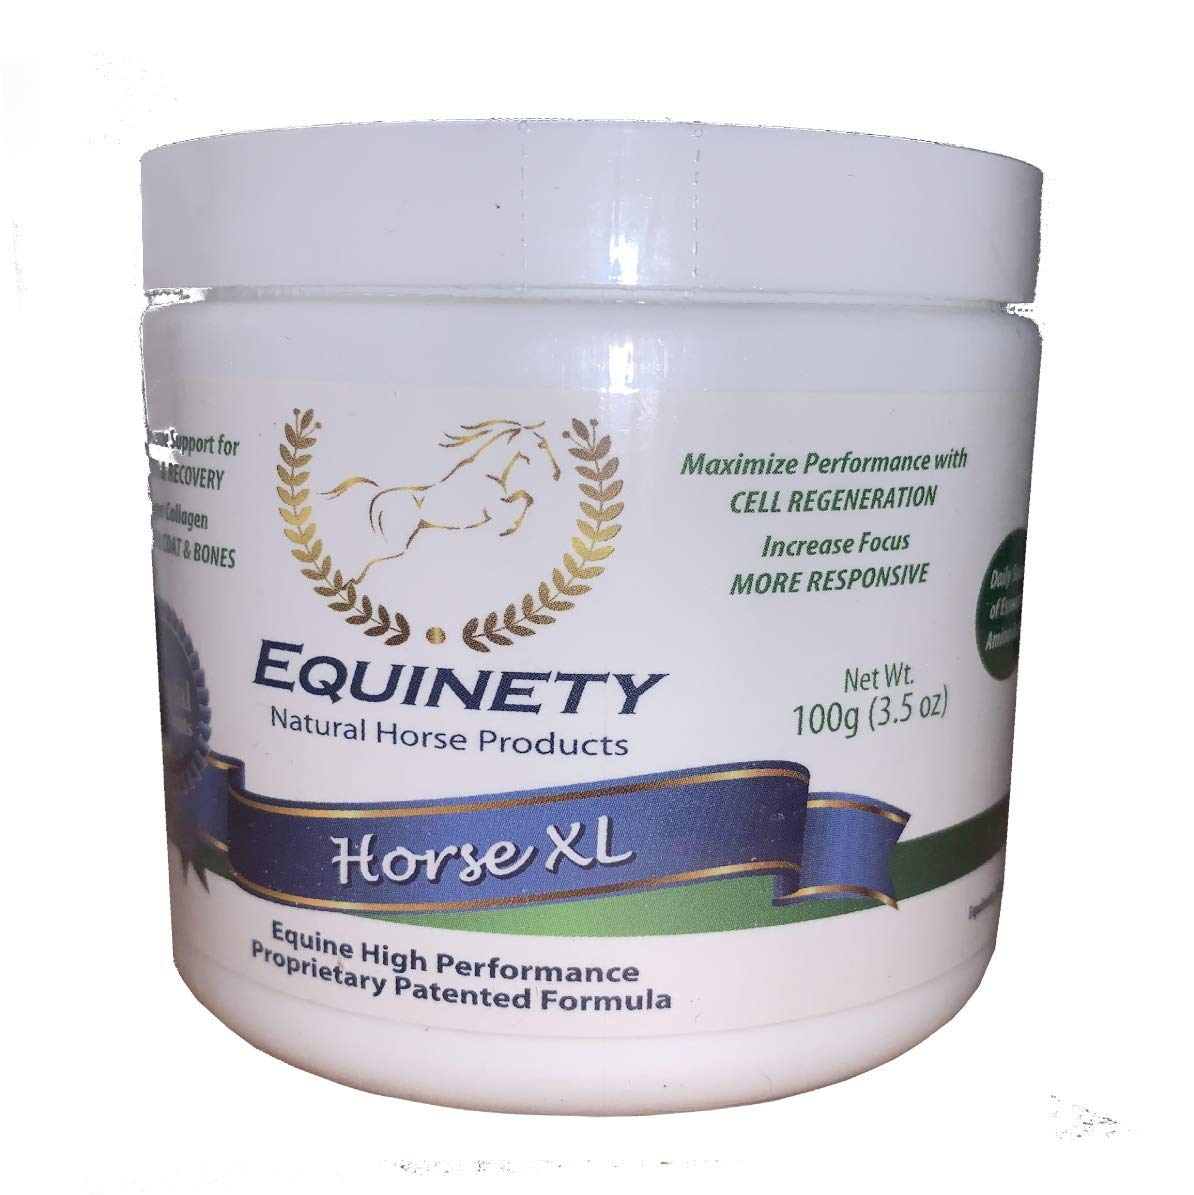 Equinety Horse XL Equine Supplement 3.5 oz by Equinety